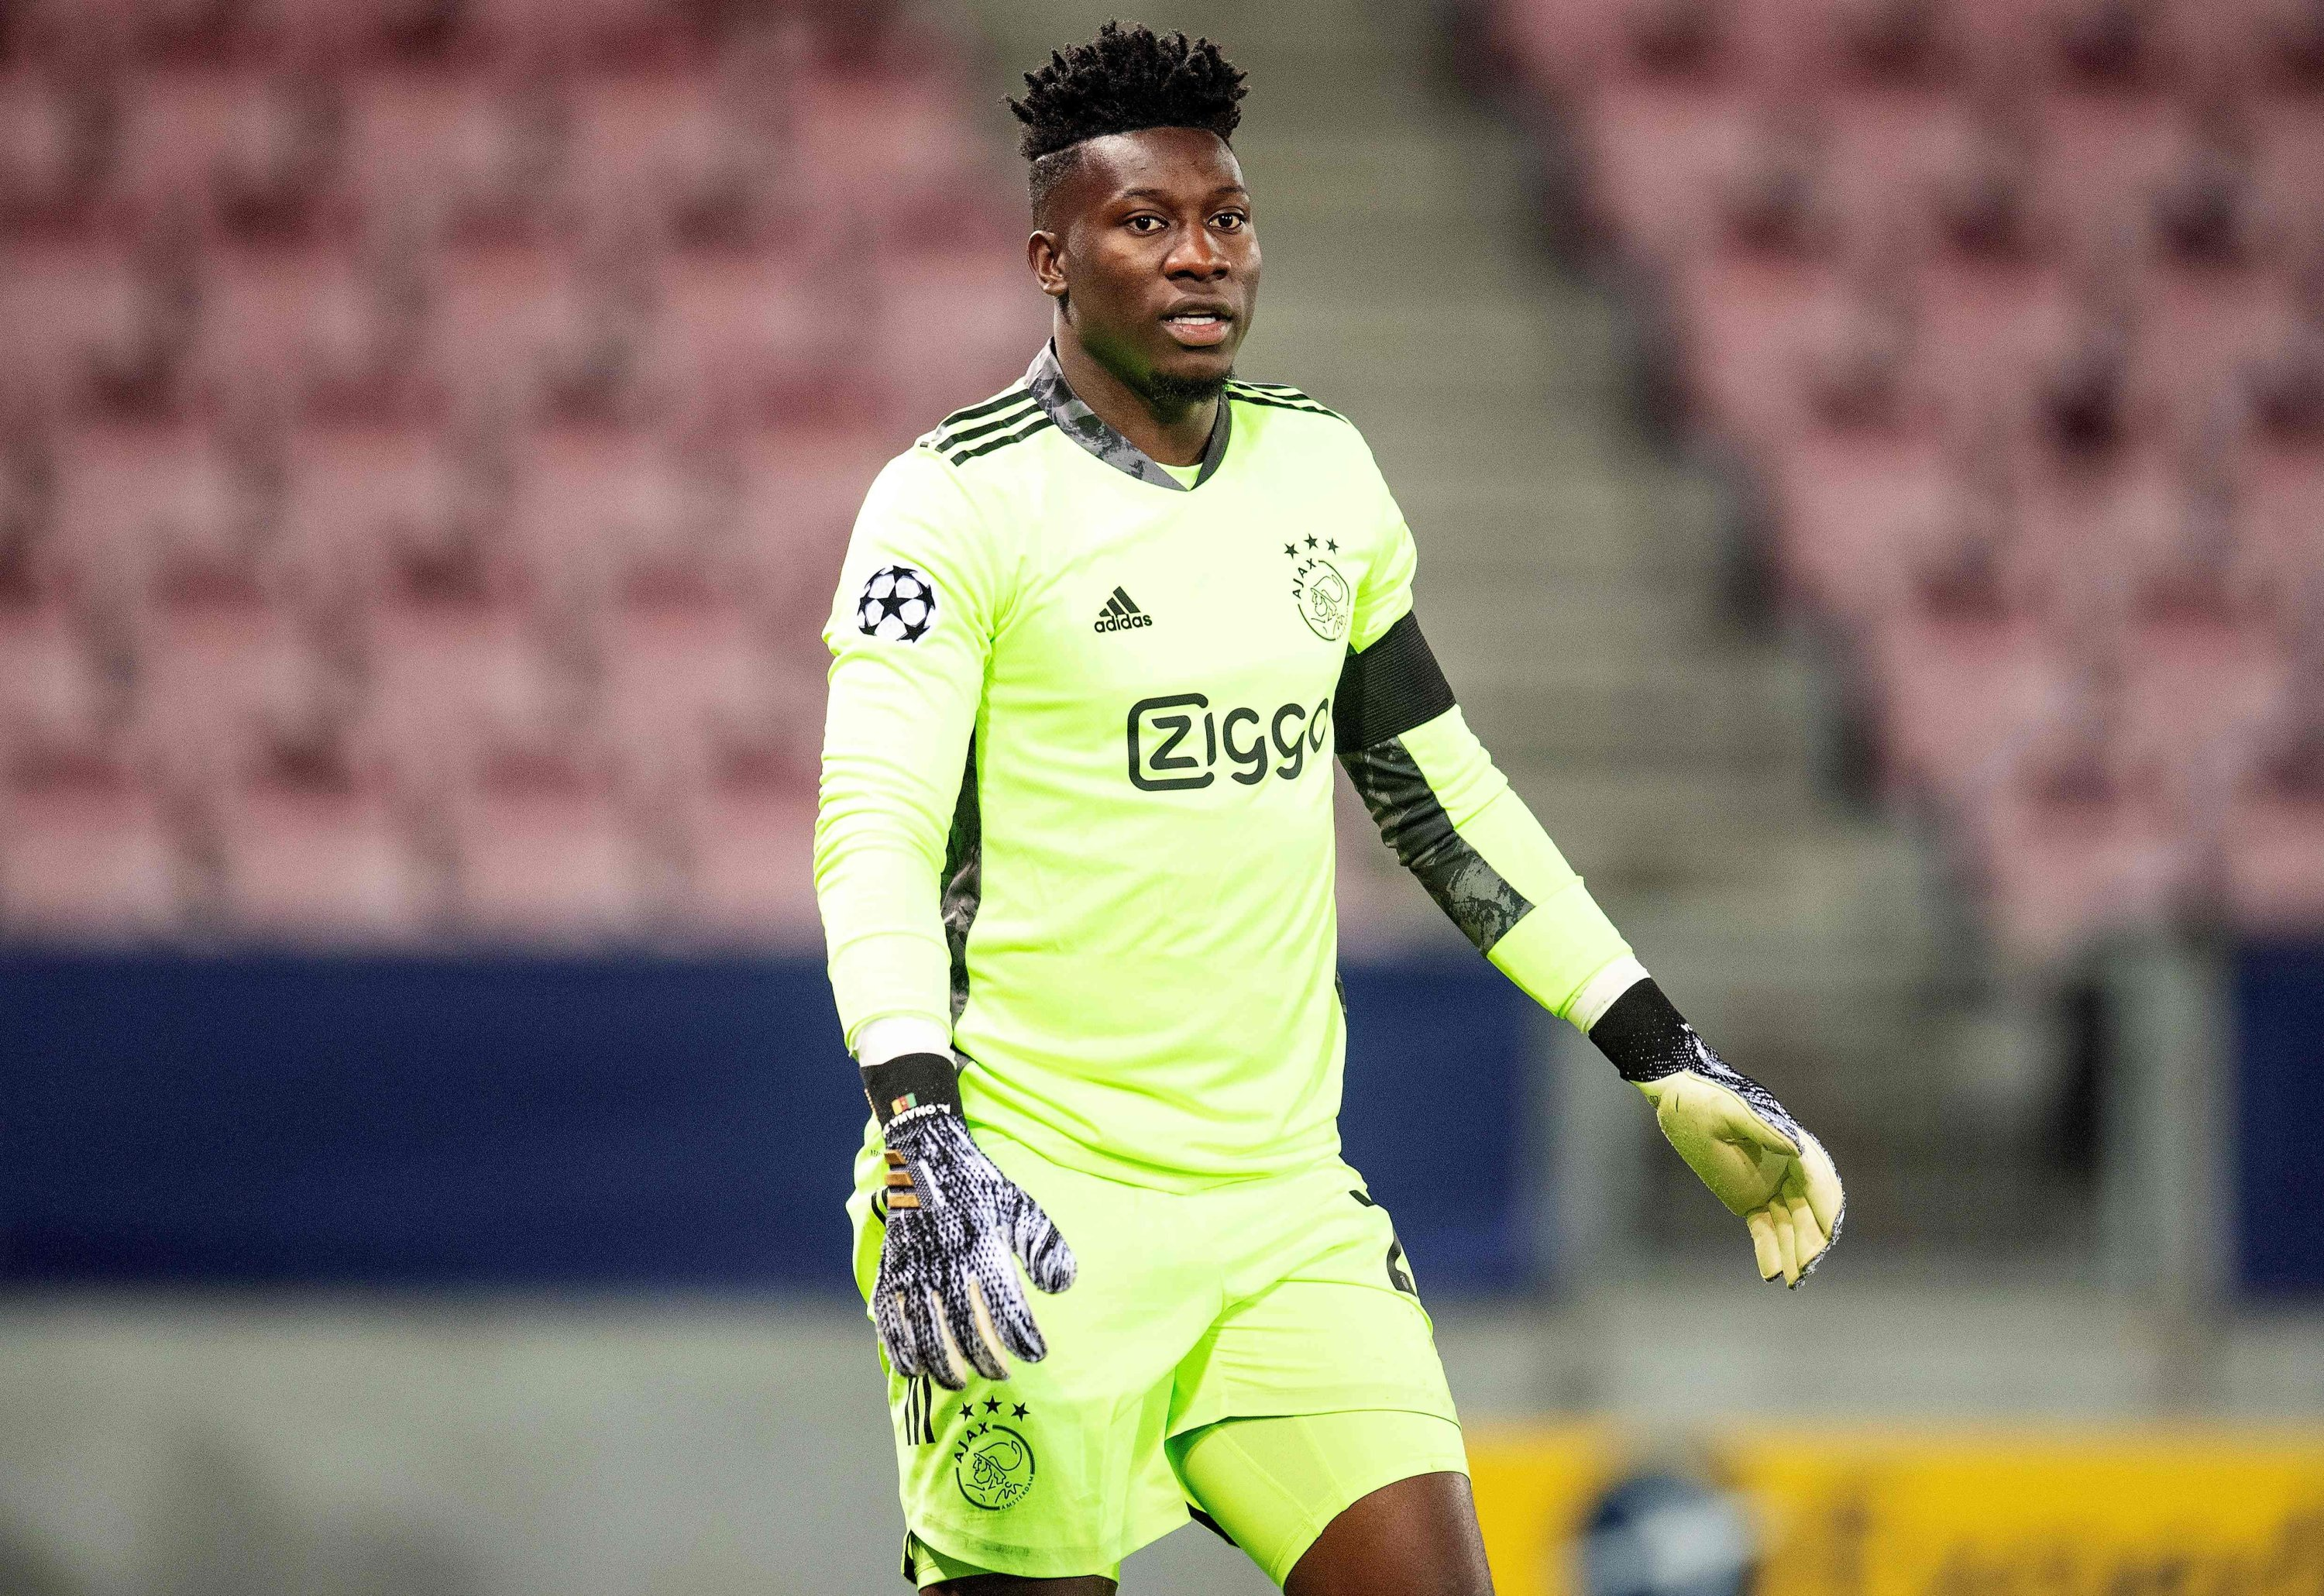 Ajax Amsterdam keeper Onana banned for 1 year for doping   Daily Sabah